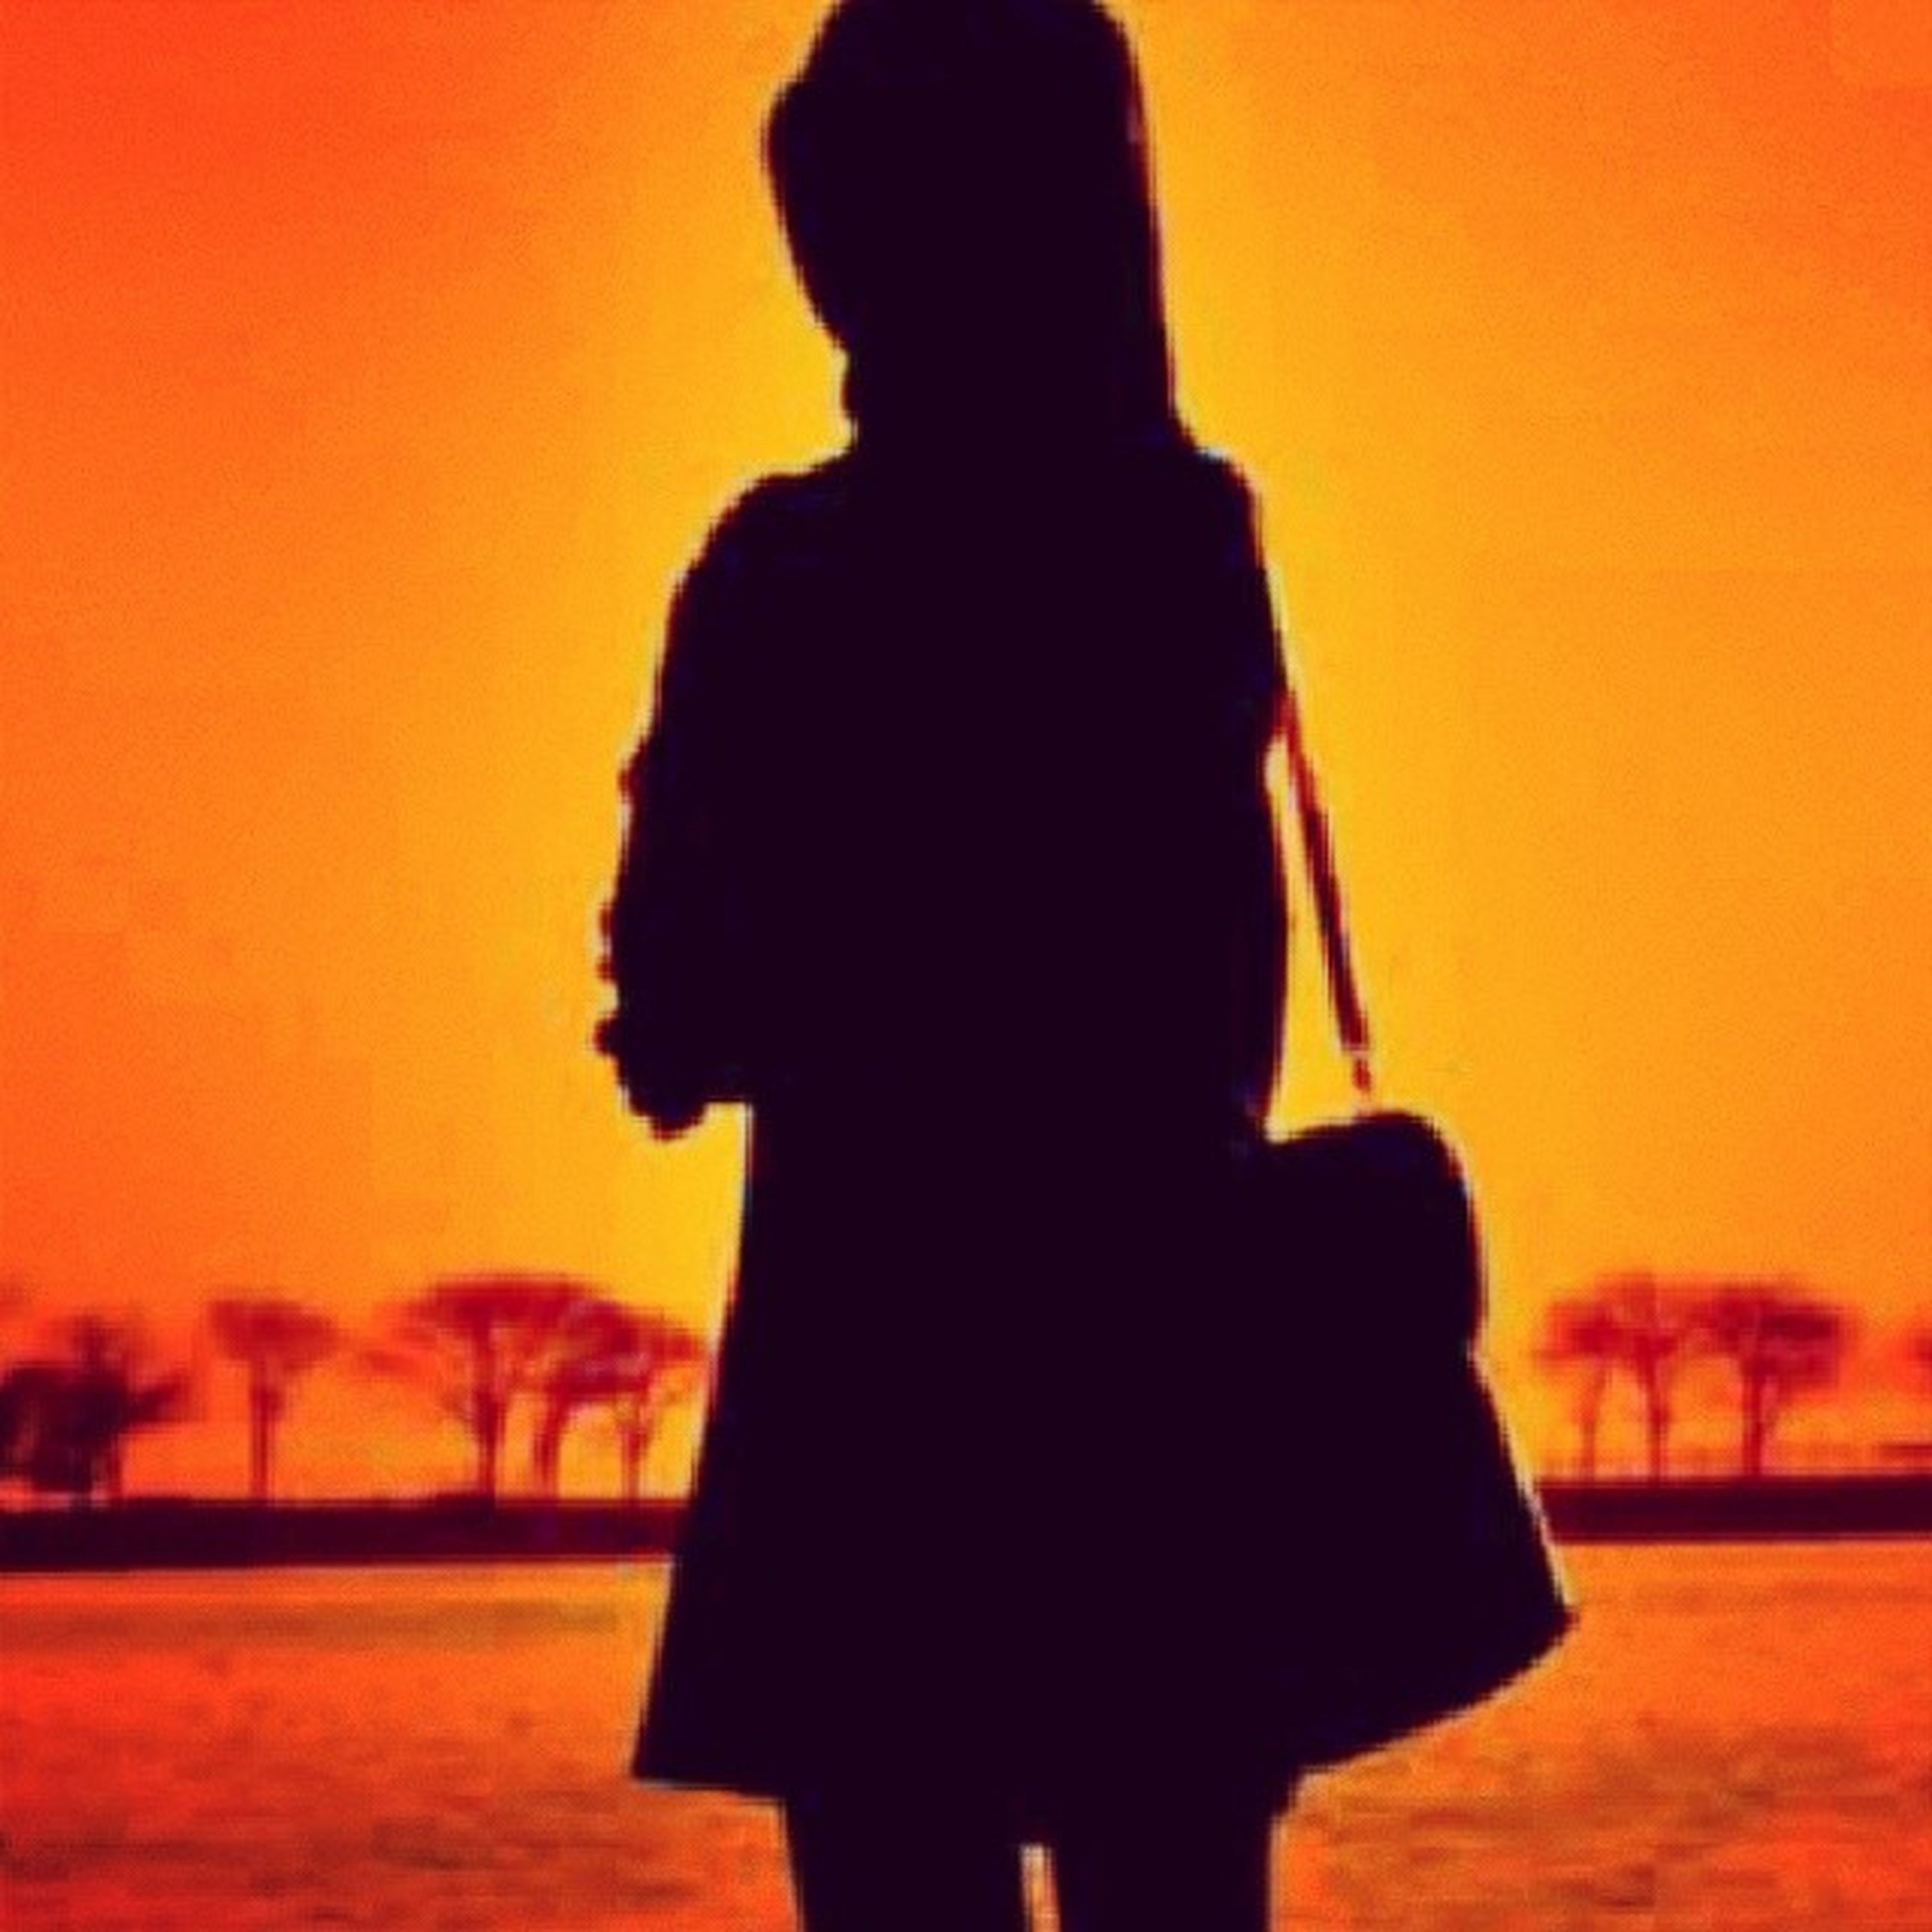 sunset, silhouette, orange color, lifestyles, leisure activity, standing, person, rear view, men, focus on foreground, three quarter length, field, holding, nature, waist up, clear sky, side view, beauty in nature